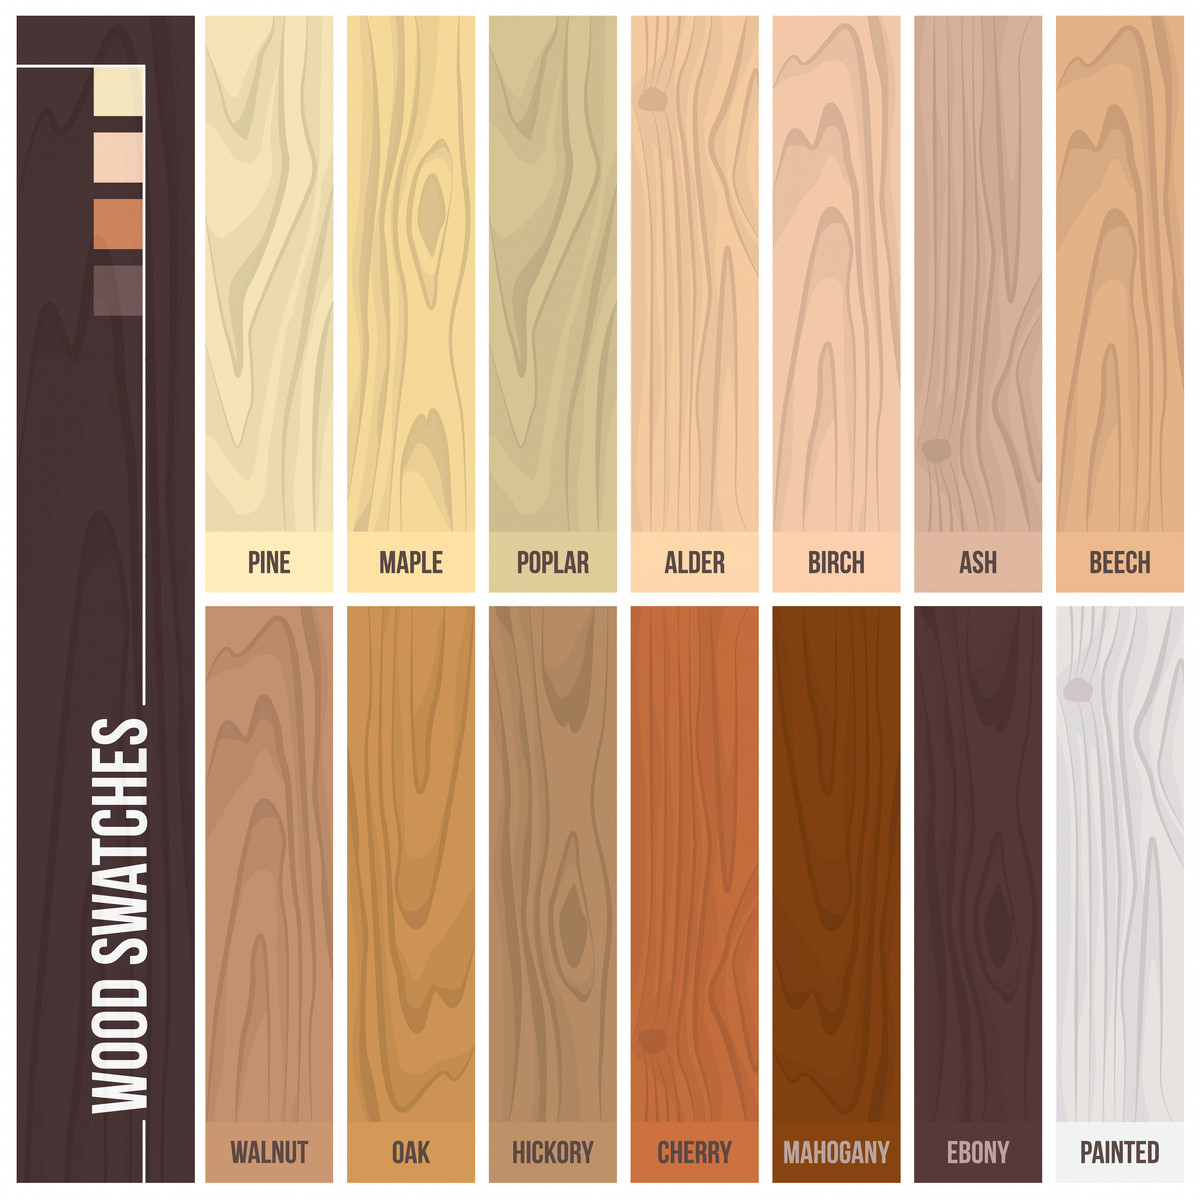 felt pads for hardwood floors of 12 types of hardwood flooring species styles edging dimensions pertaining to types of hardwood flooring illustrated guide